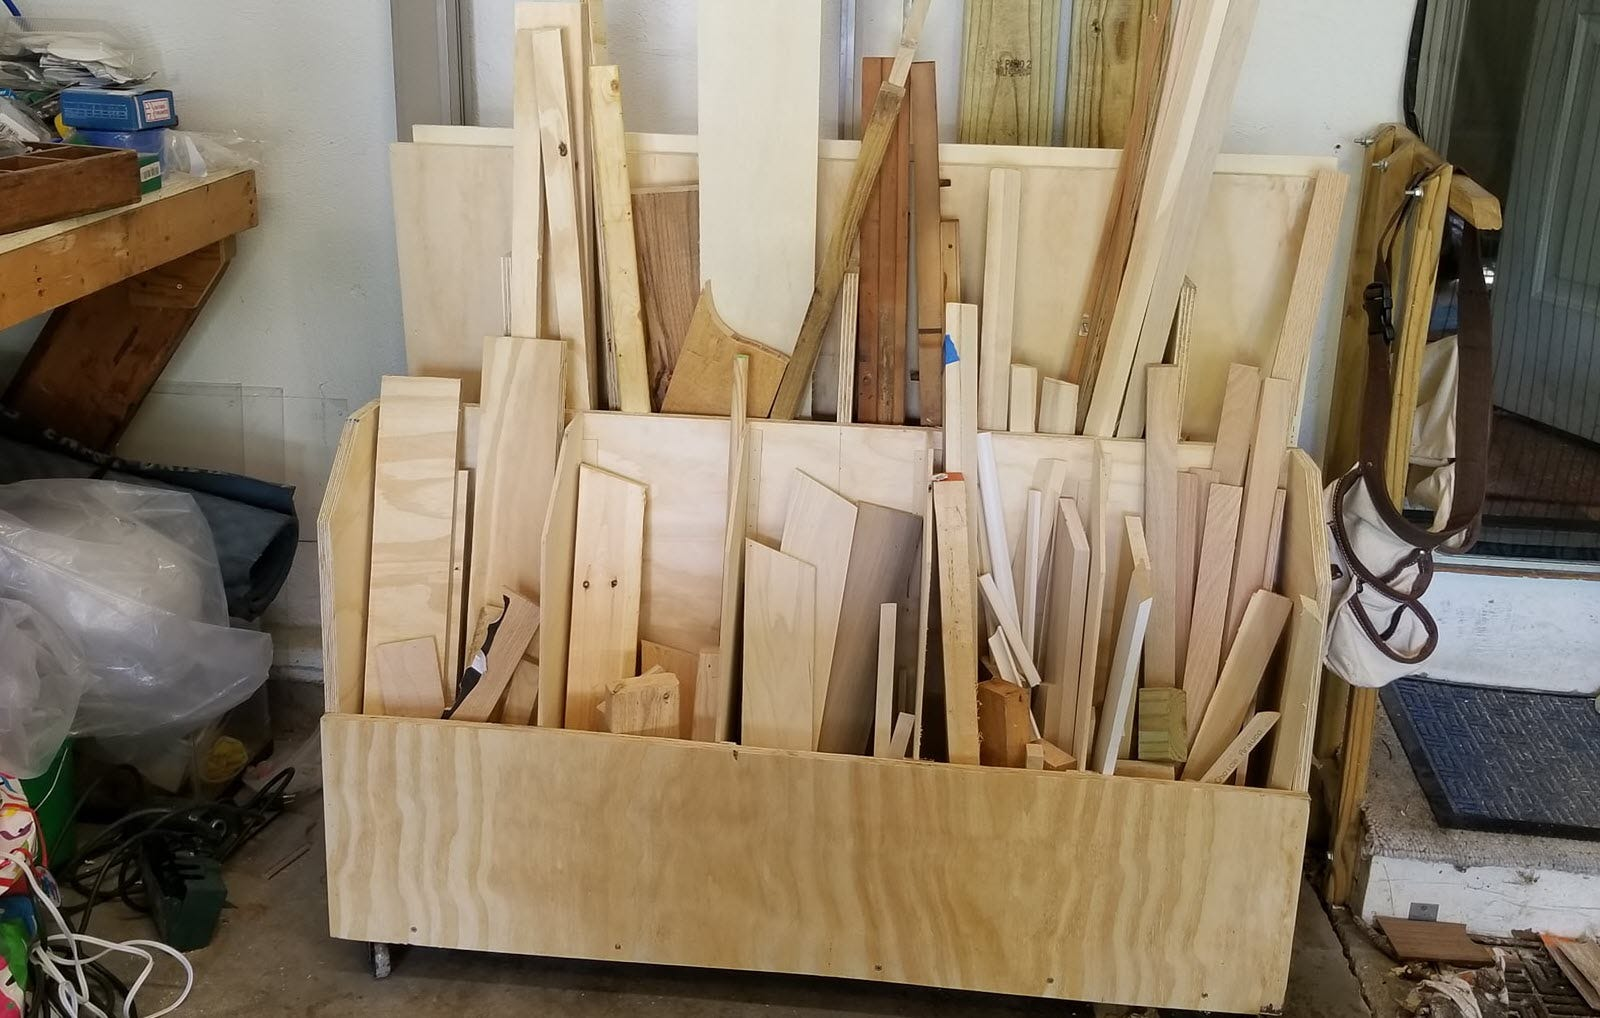 A neatly stacked set of lumber in individual slots of a cart.